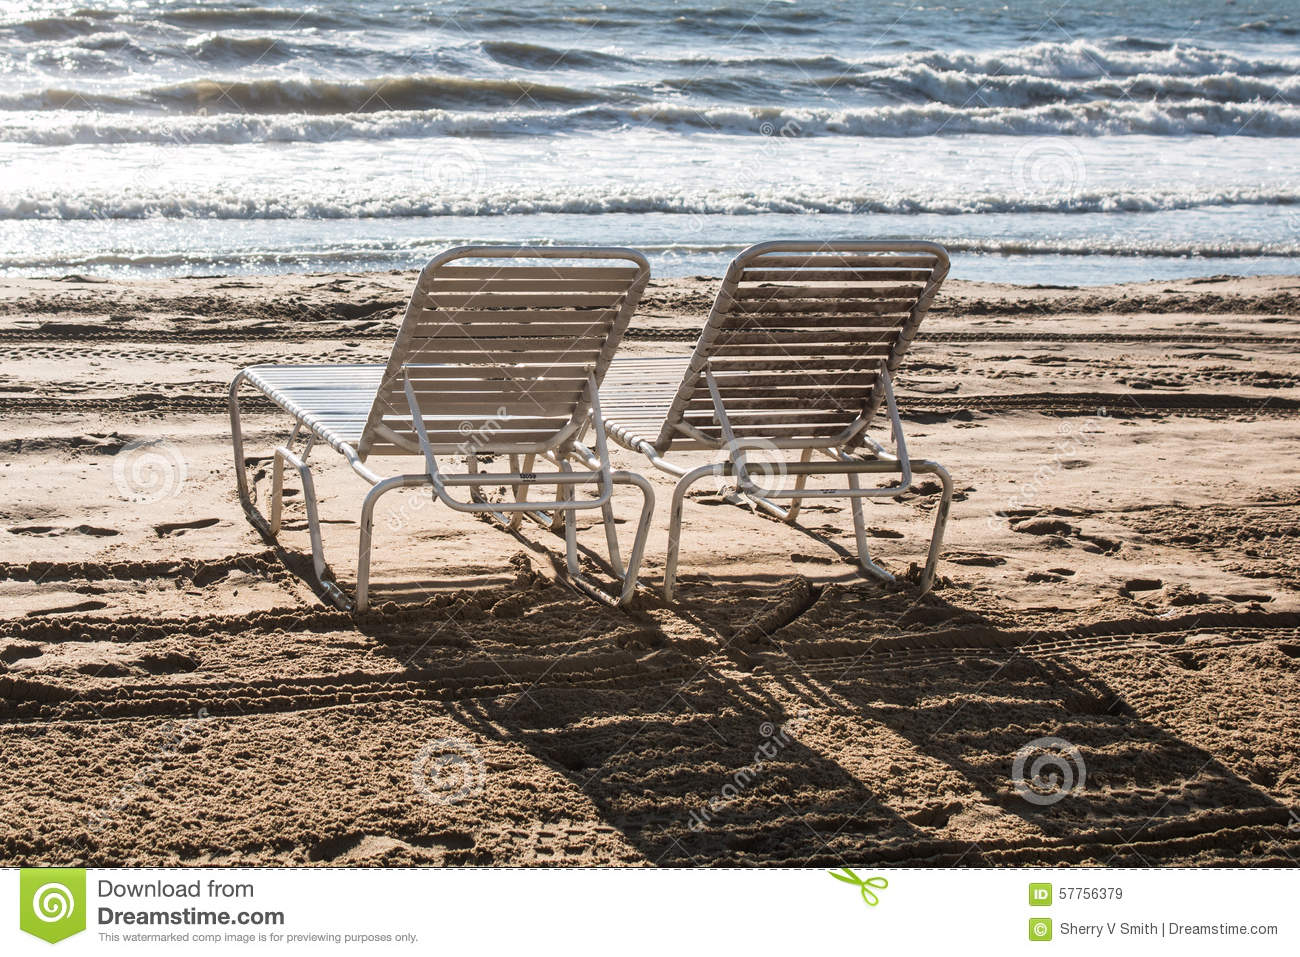 Royalty free stock images lounge chairs on beach image 57756379